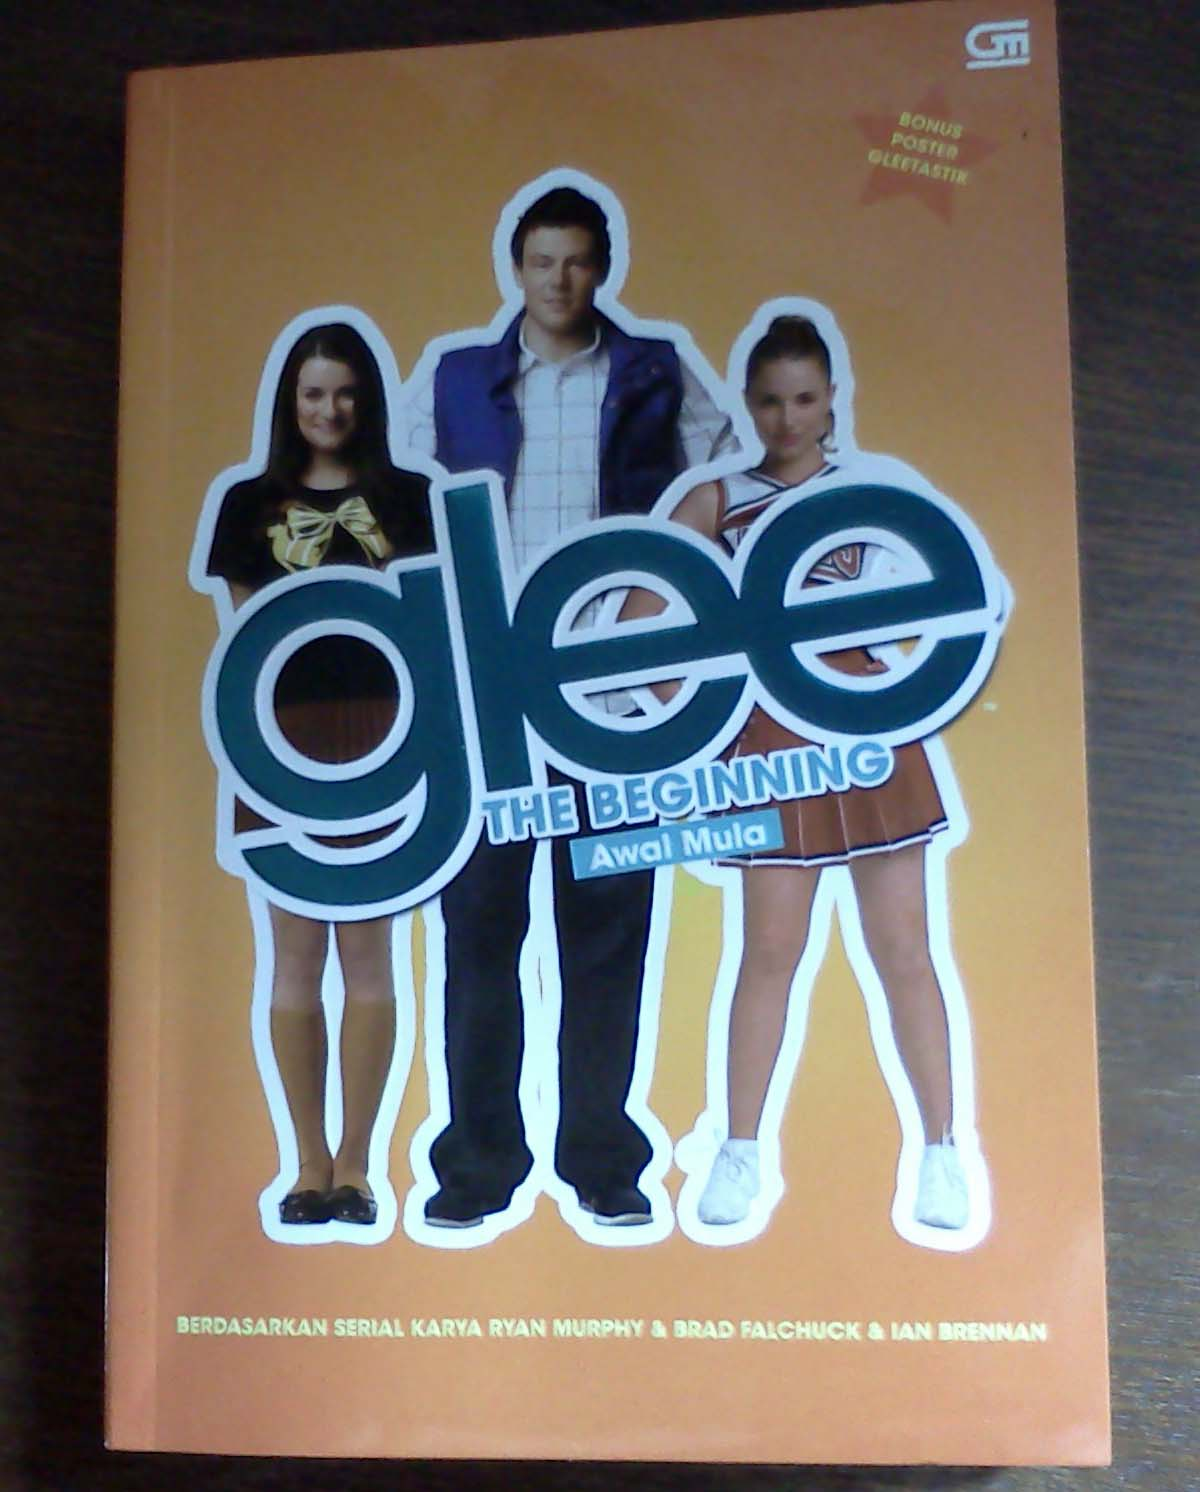 Glee the beginning: awal mula